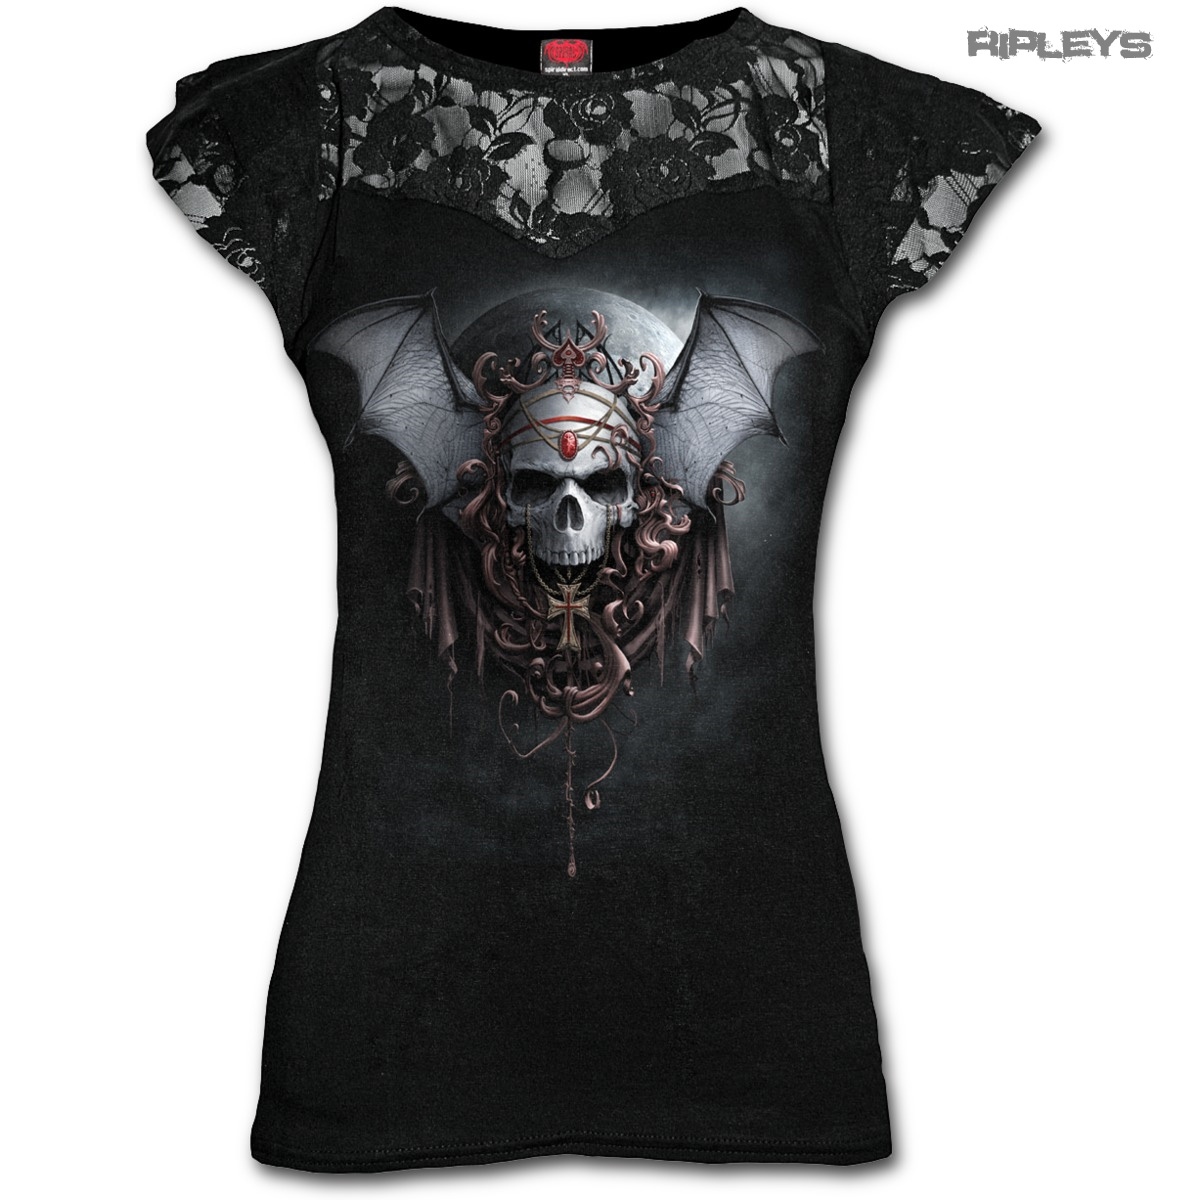 SPIRAL-DIRECT-Ladies-Black-Gothic-GOTH-NIGHTS-Skull-Top-Lace-Bat-All-Sizes thumbnail 6